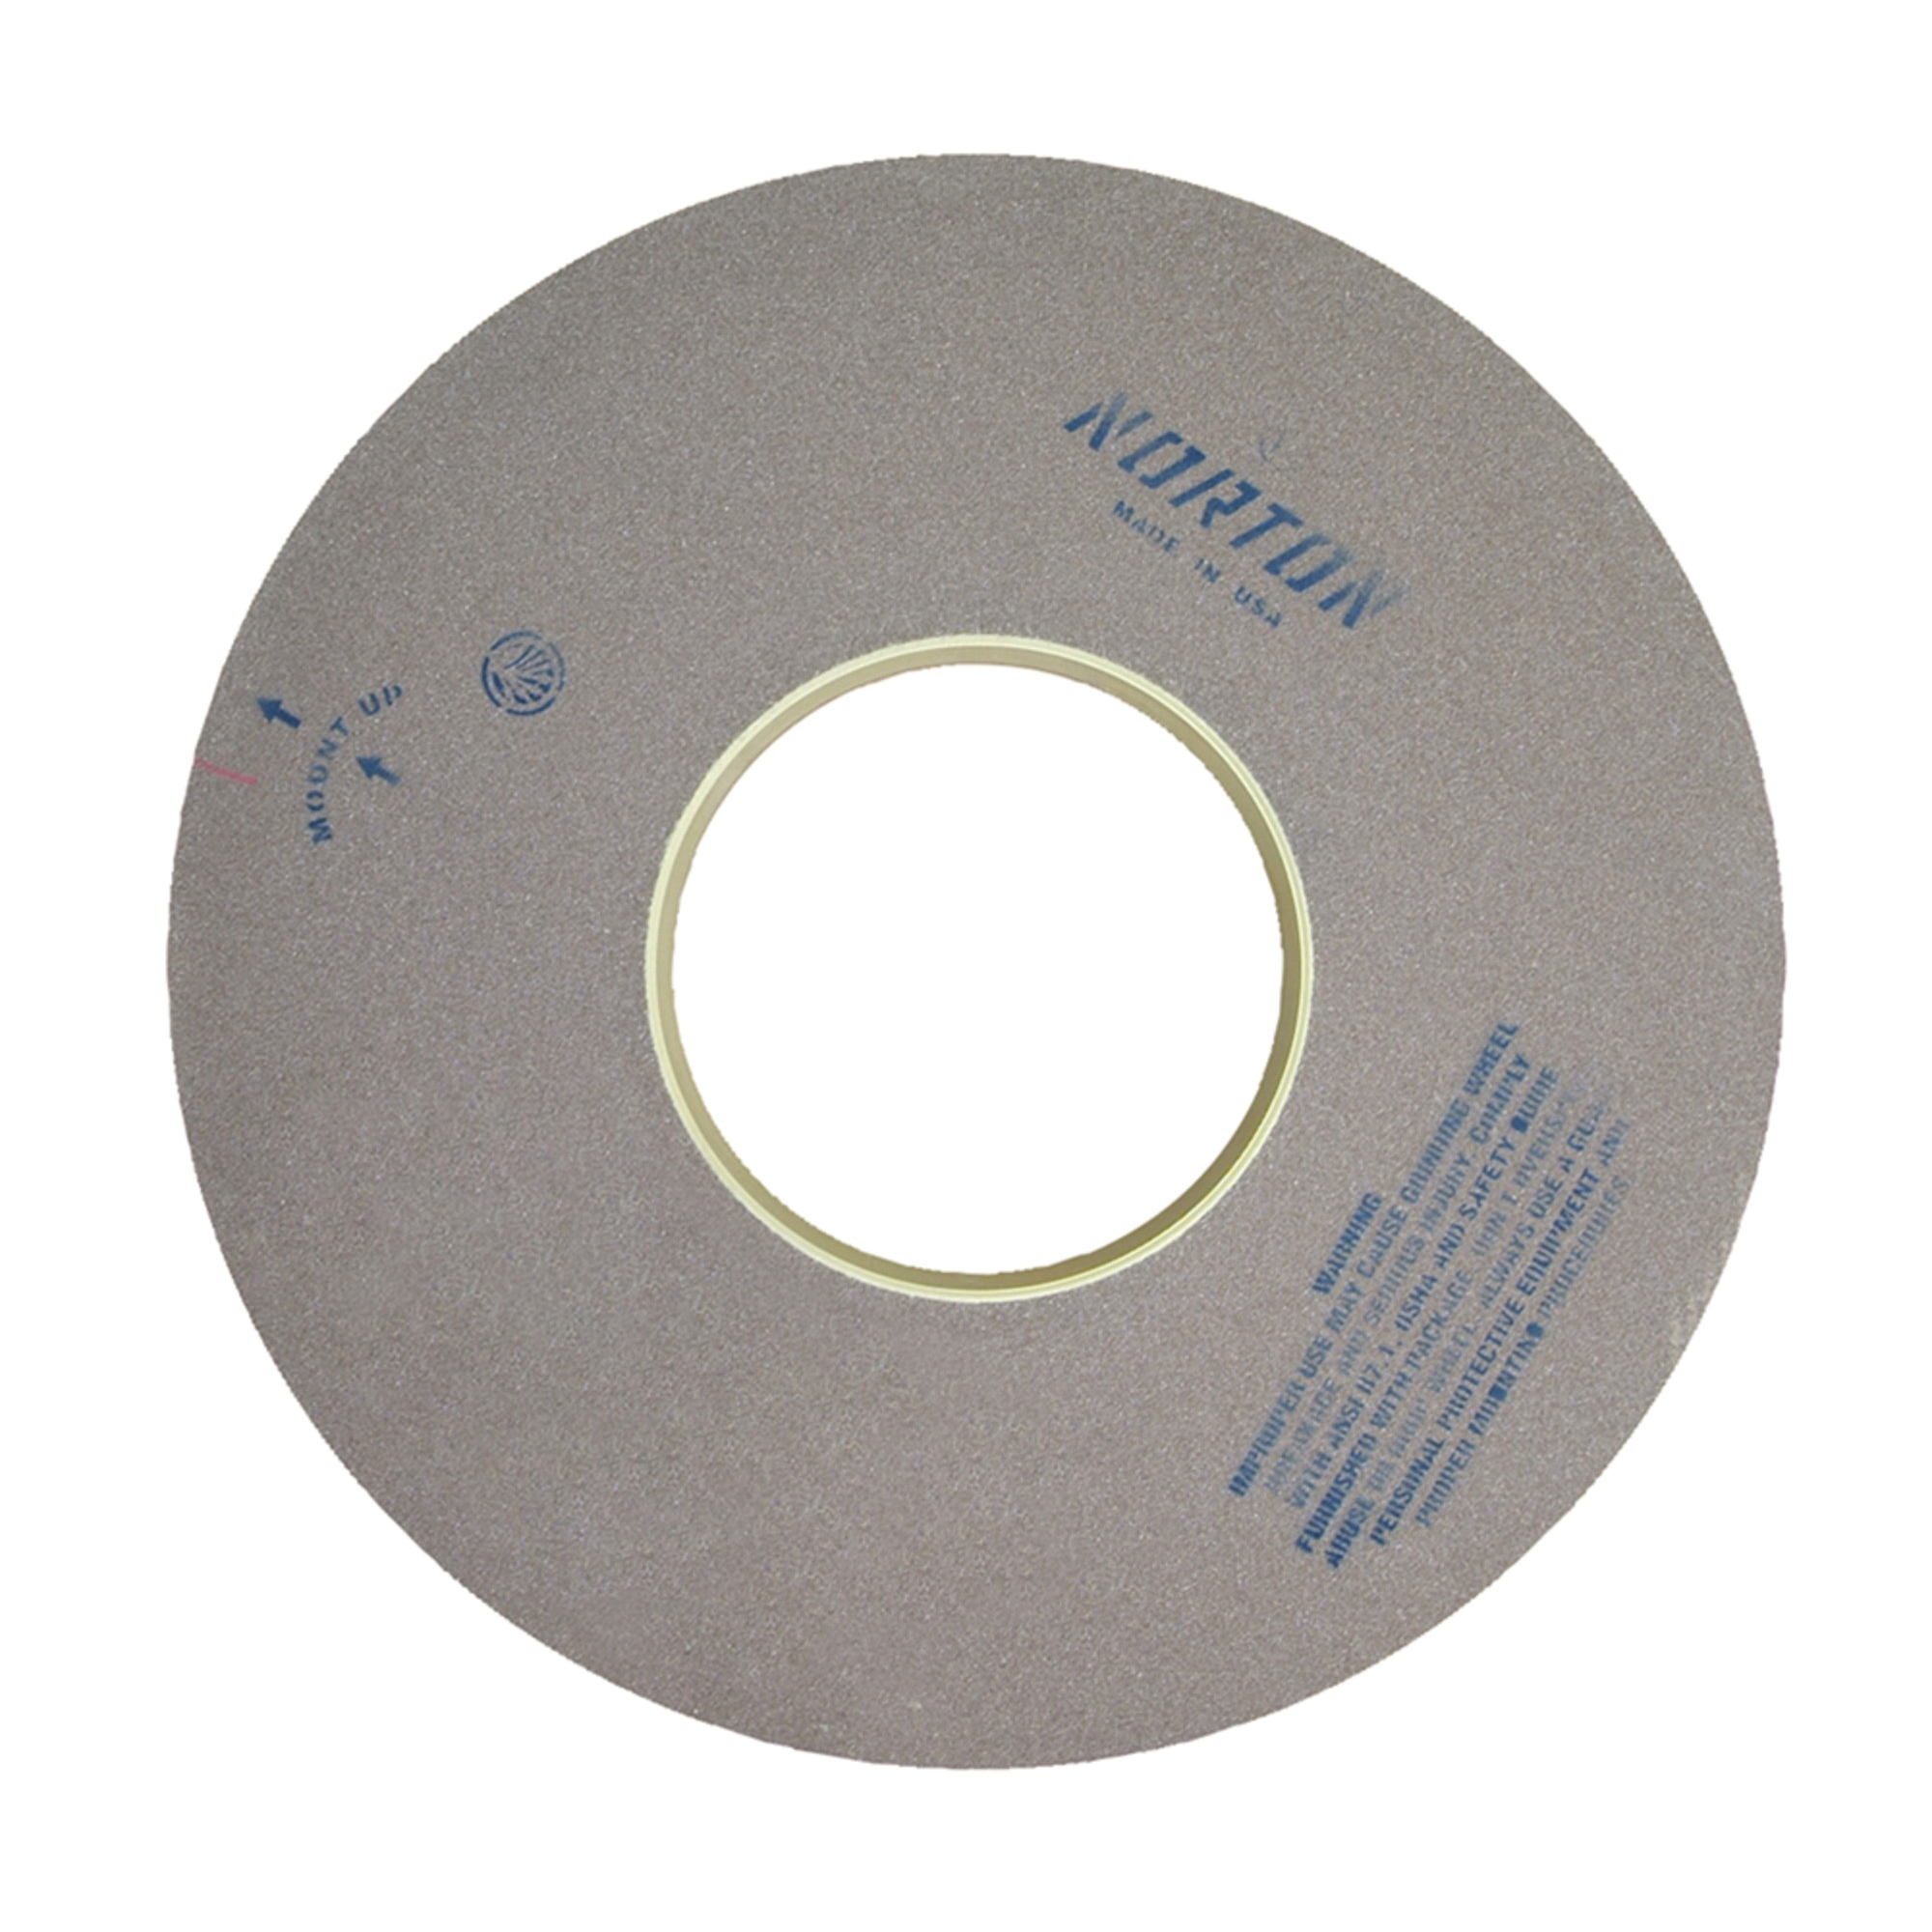 Norton® 69078666712 64A Surface and Cylindrical Grinding Wheel, 20 in Dia x 2 in THK, 8 in Center Hole, 60 Grit, Aluminum Oxide Abrasive